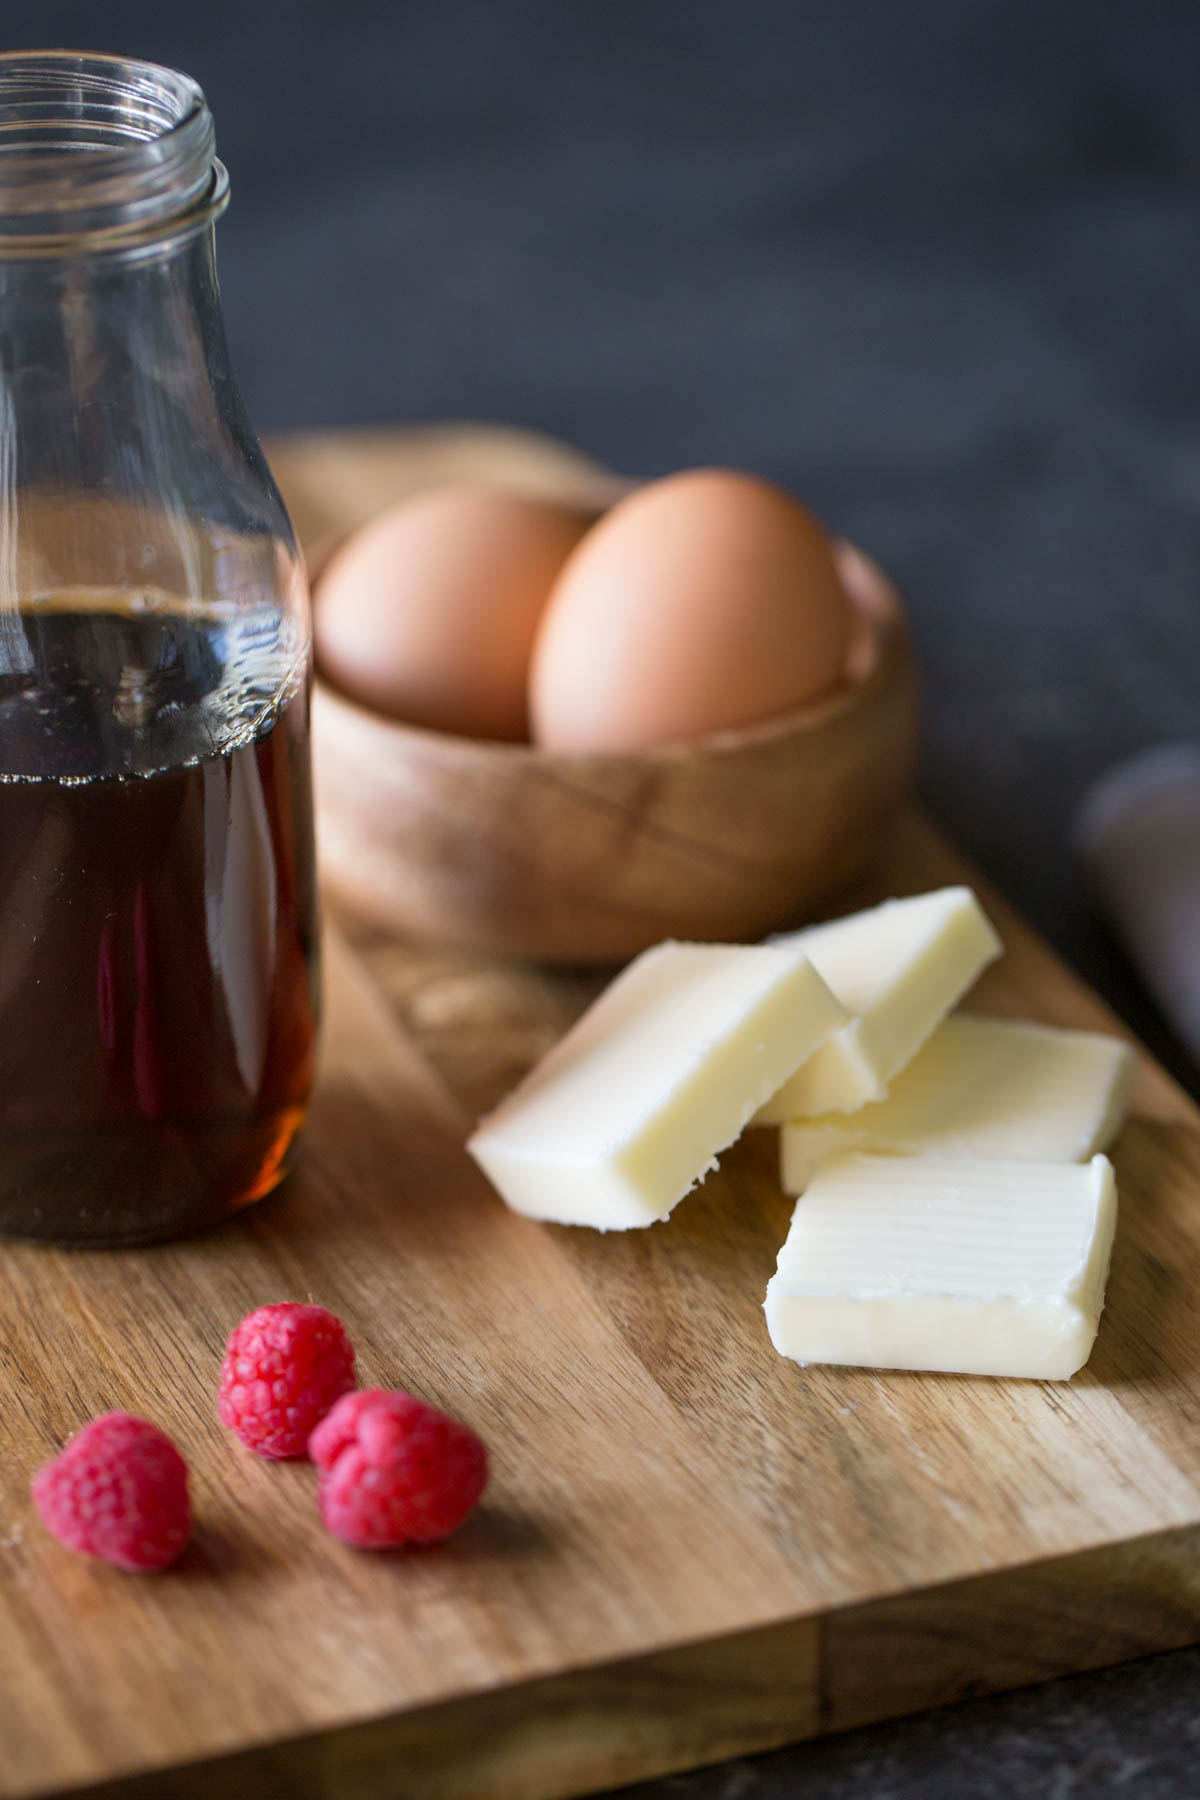 A cutting board with four pads of butter, a small wood bowl of brown eggs, a glass jar of maple syrup and a few fresh raspberries.